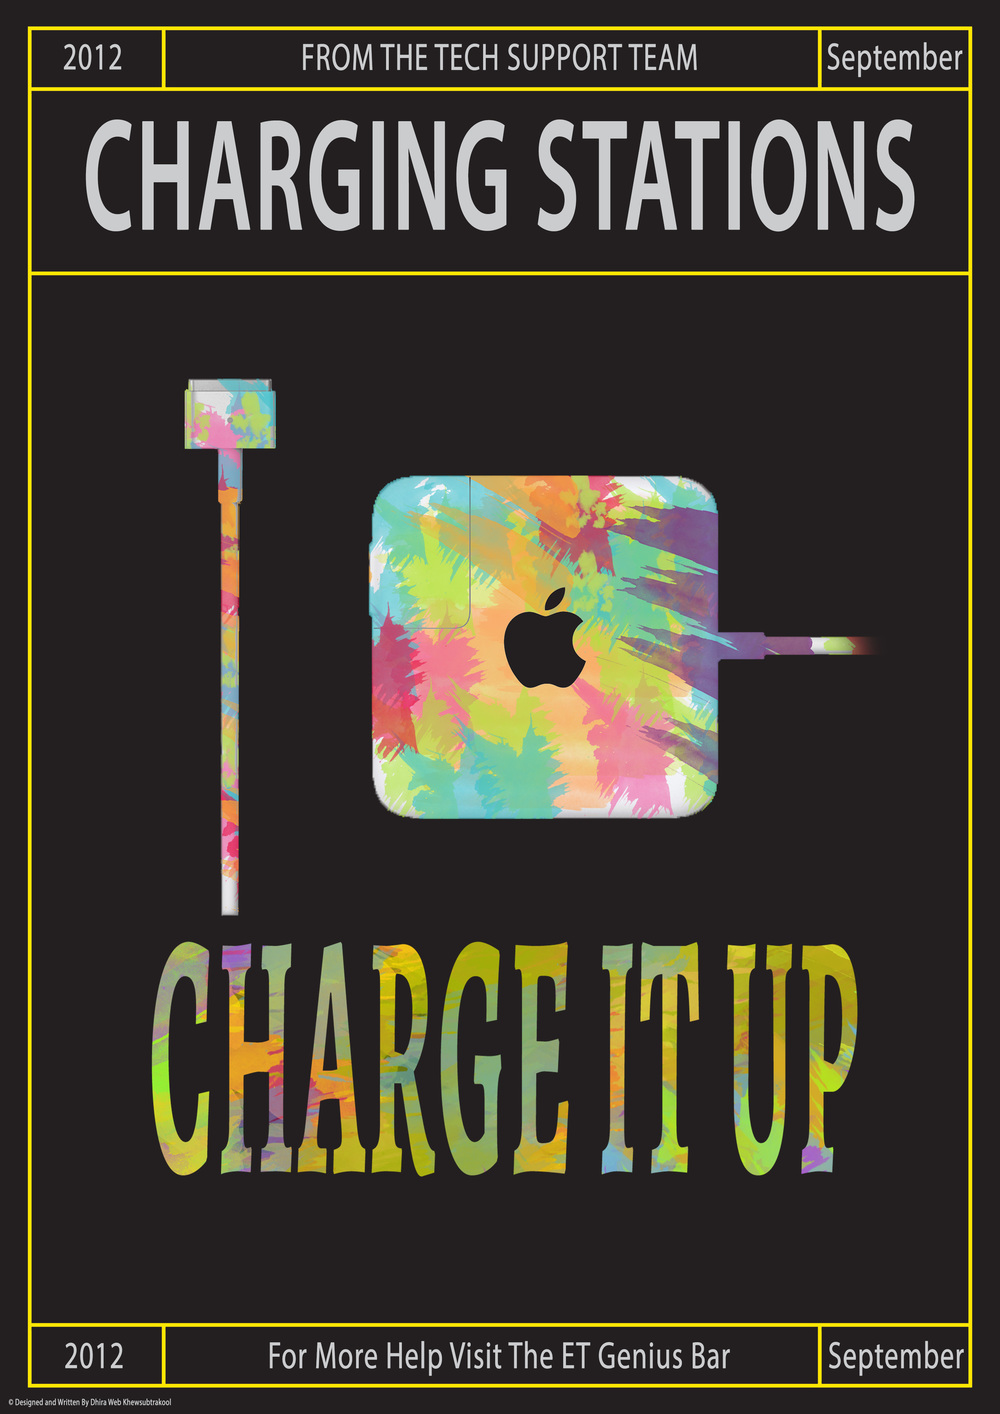 Charge it up.jpg